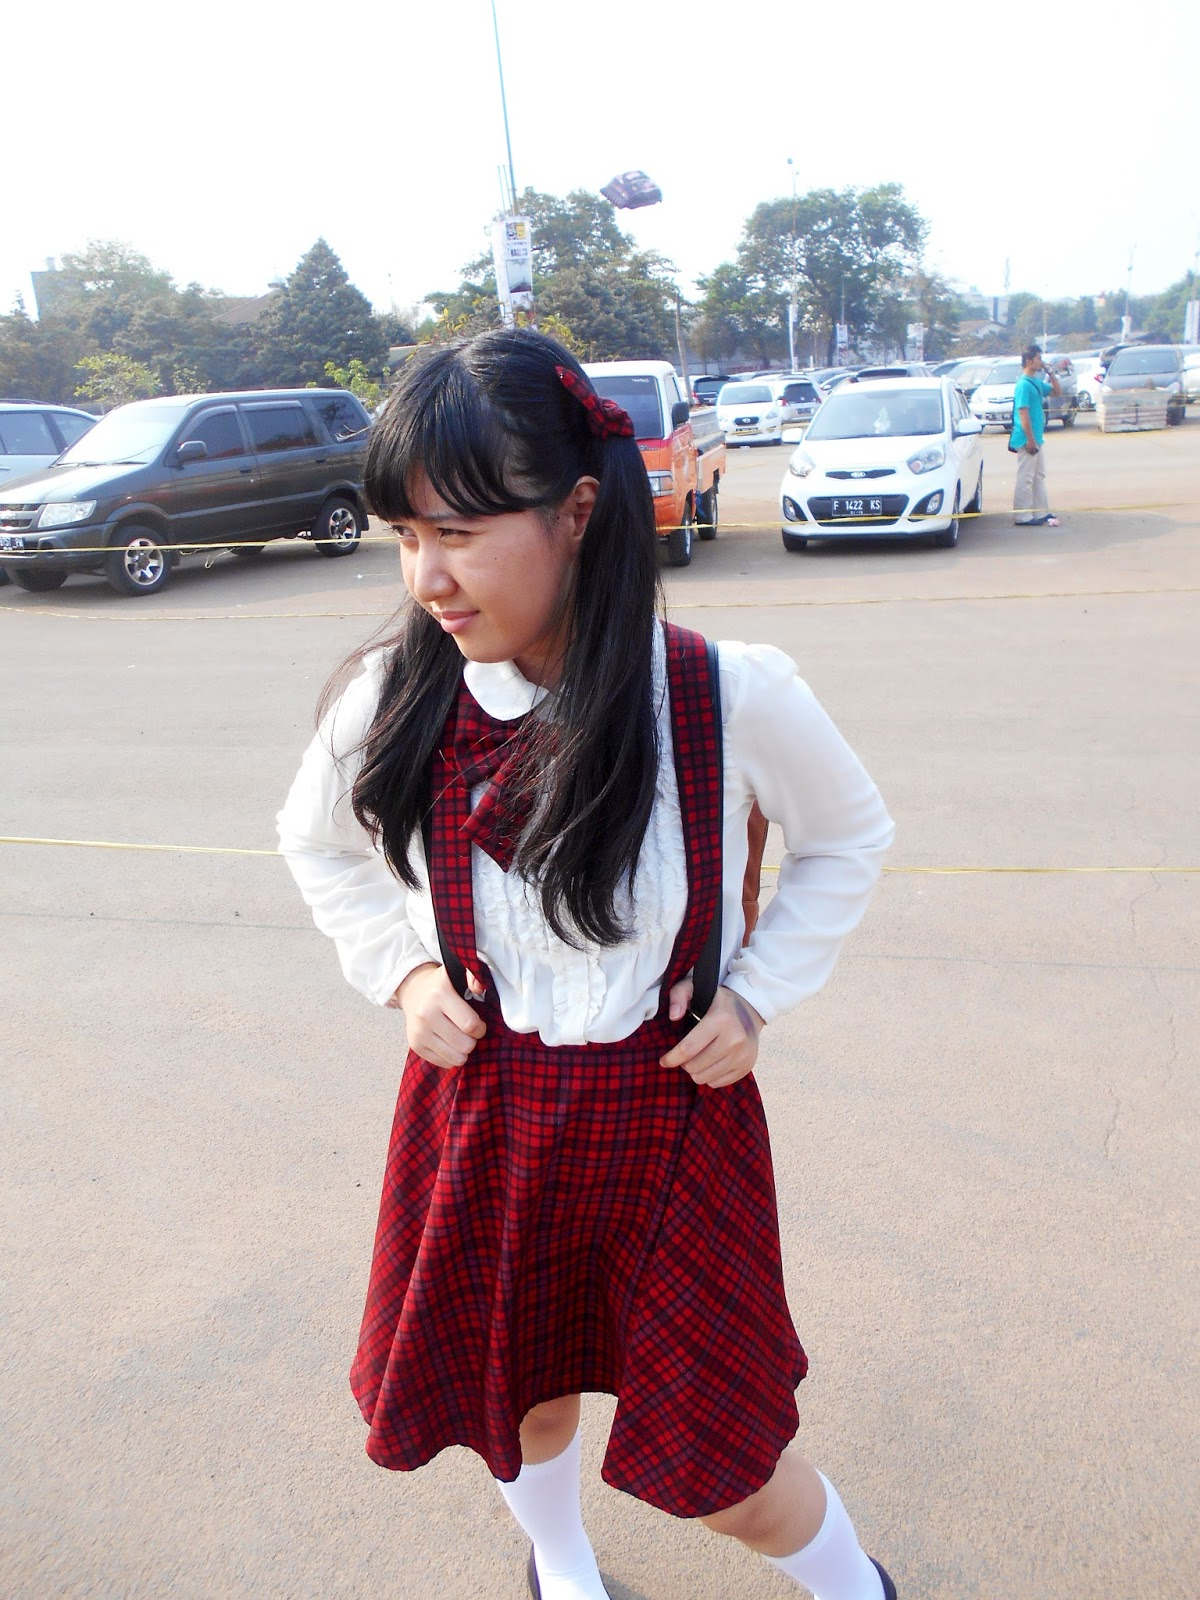 Anime School Girl Bow Tie DIY - AFAID 2015 parking area